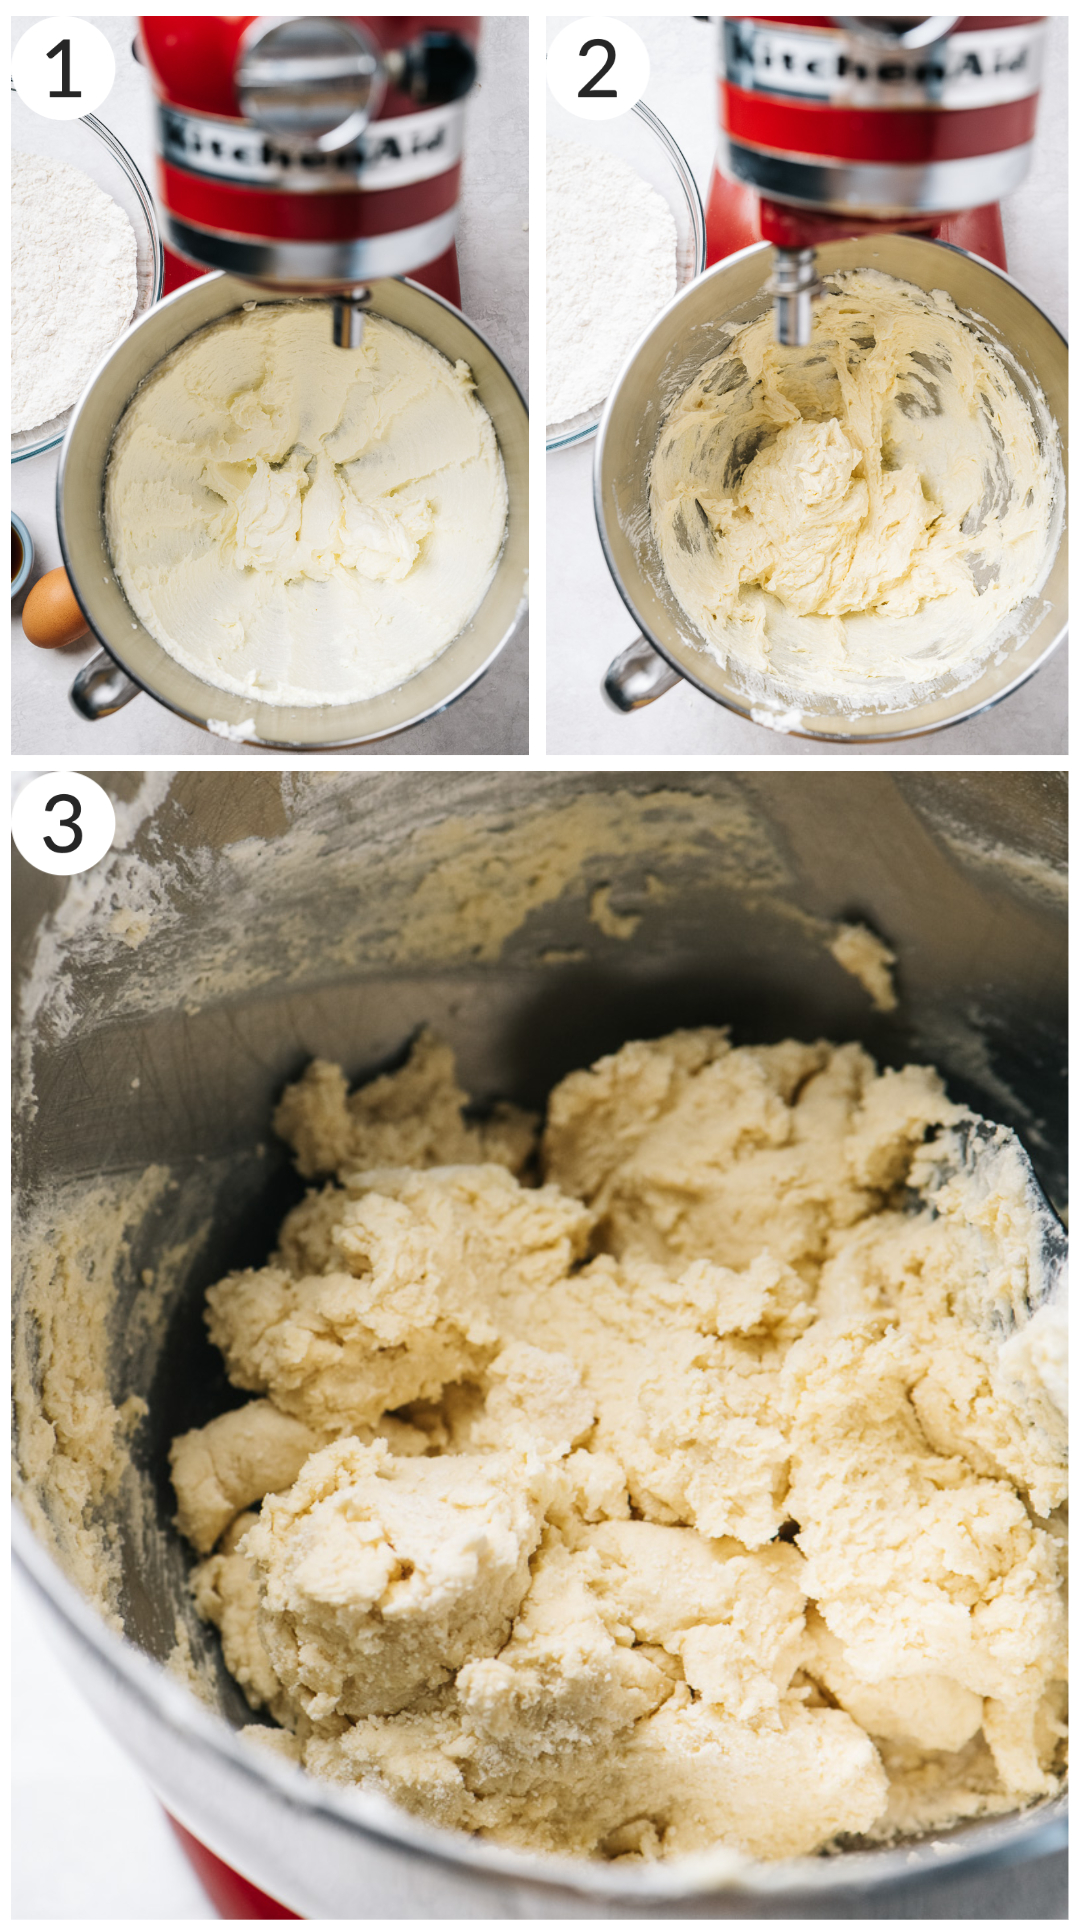 photo collage demonstrating how to make cinnamon roll cookie dough in stand mixer